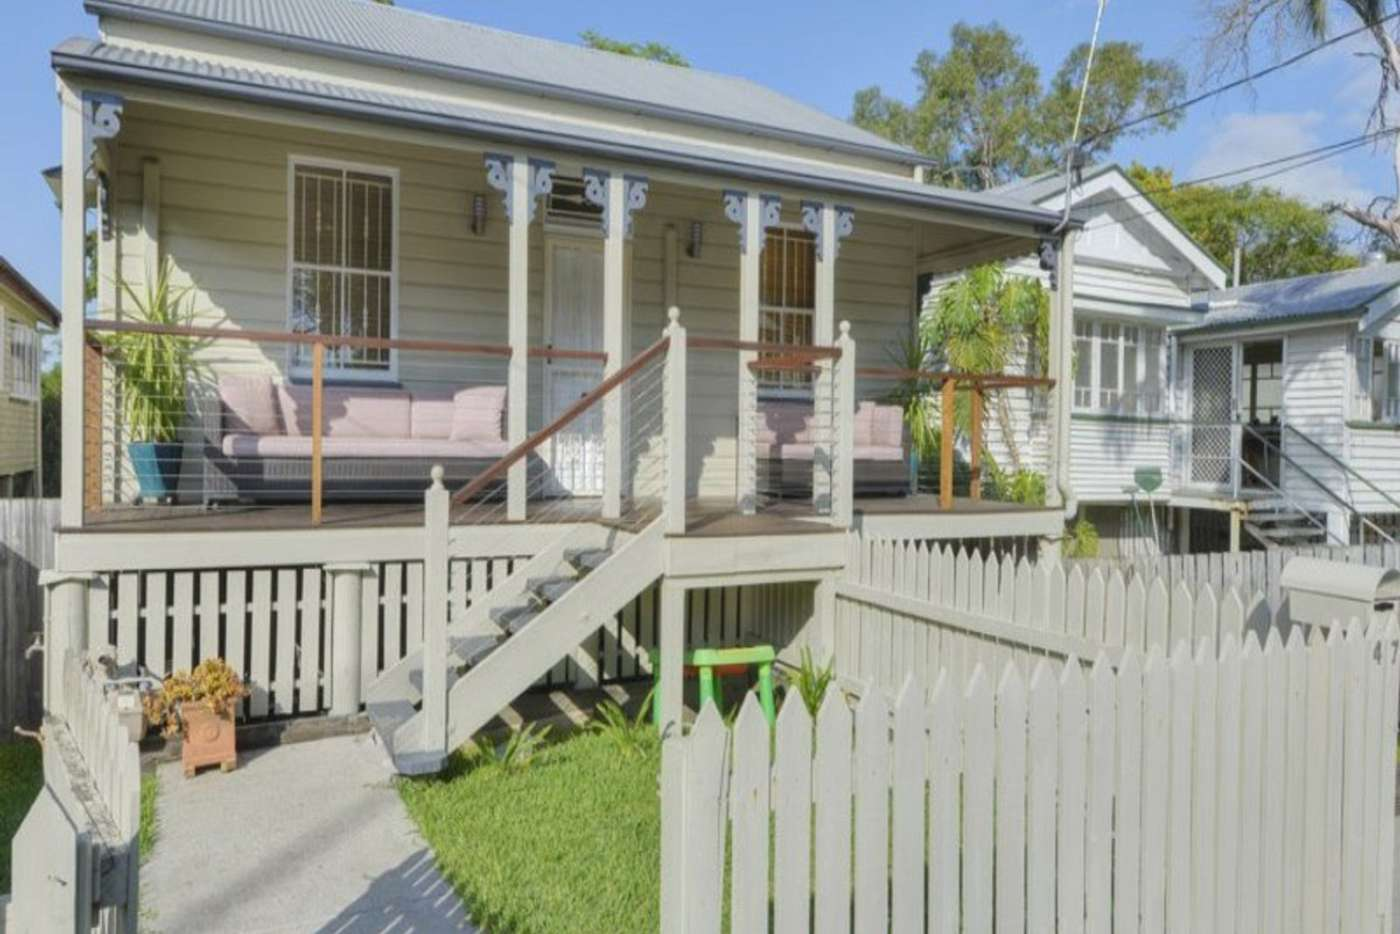 Main view of Homely house listing, 47 Lockhart Street, Woolloongabba QLD 4102